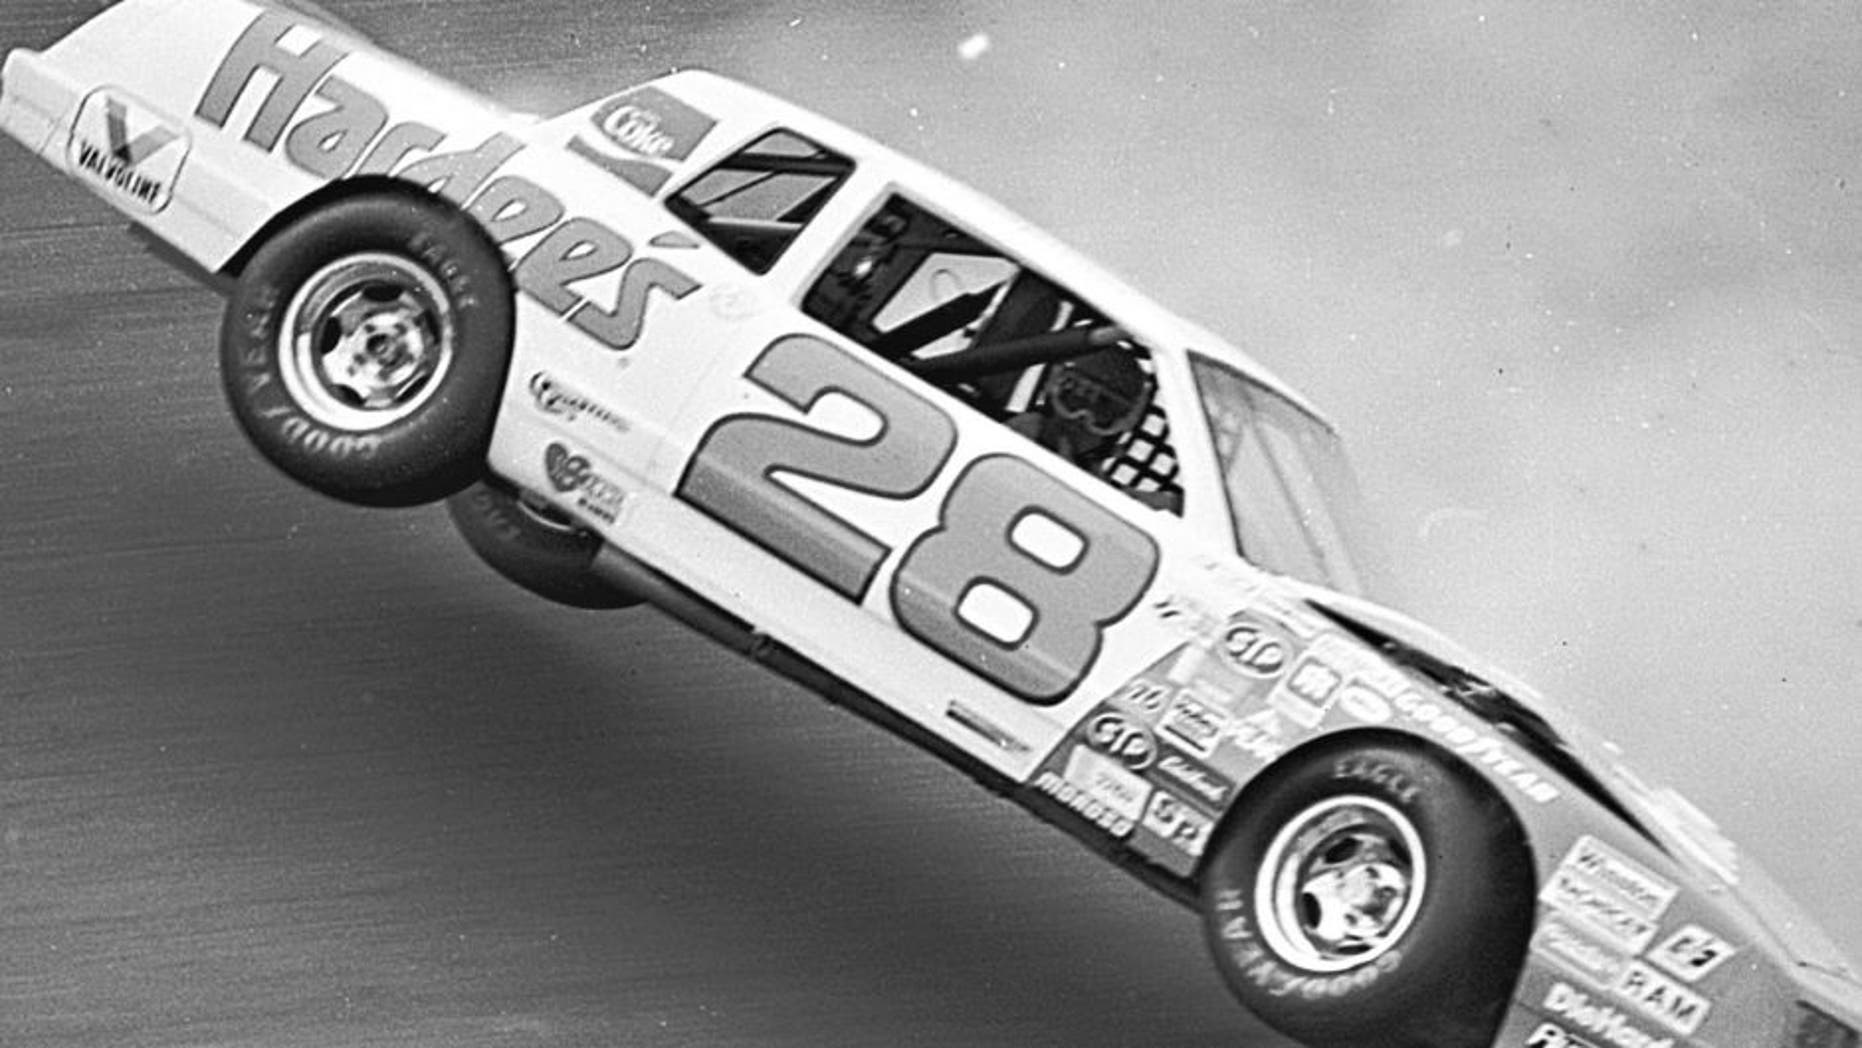 DAYTONA BEACH, FL — February 14, 1983: Cale Yarborough gazes out the passenger side window of the Hardee's Chevrolet wondering what will happen next as the car lifts in the air before rolling over during qualifying for the Daytona 500 NASCAR Cup race at Daytona International Speedway. This incident took place on Yarborough's second qualifying lap after he turned his first circuit at 200.503 mph, the first car to break the 200 mph barrier in qualifying for a Cup race at Daytona. Because he had to go to a back-up car for the race, Yarborough's first lap time was disallowed but he came back to win the Daytona 500 in his back-up machine. (Photo by ISC Images & Archives via Getty Images)